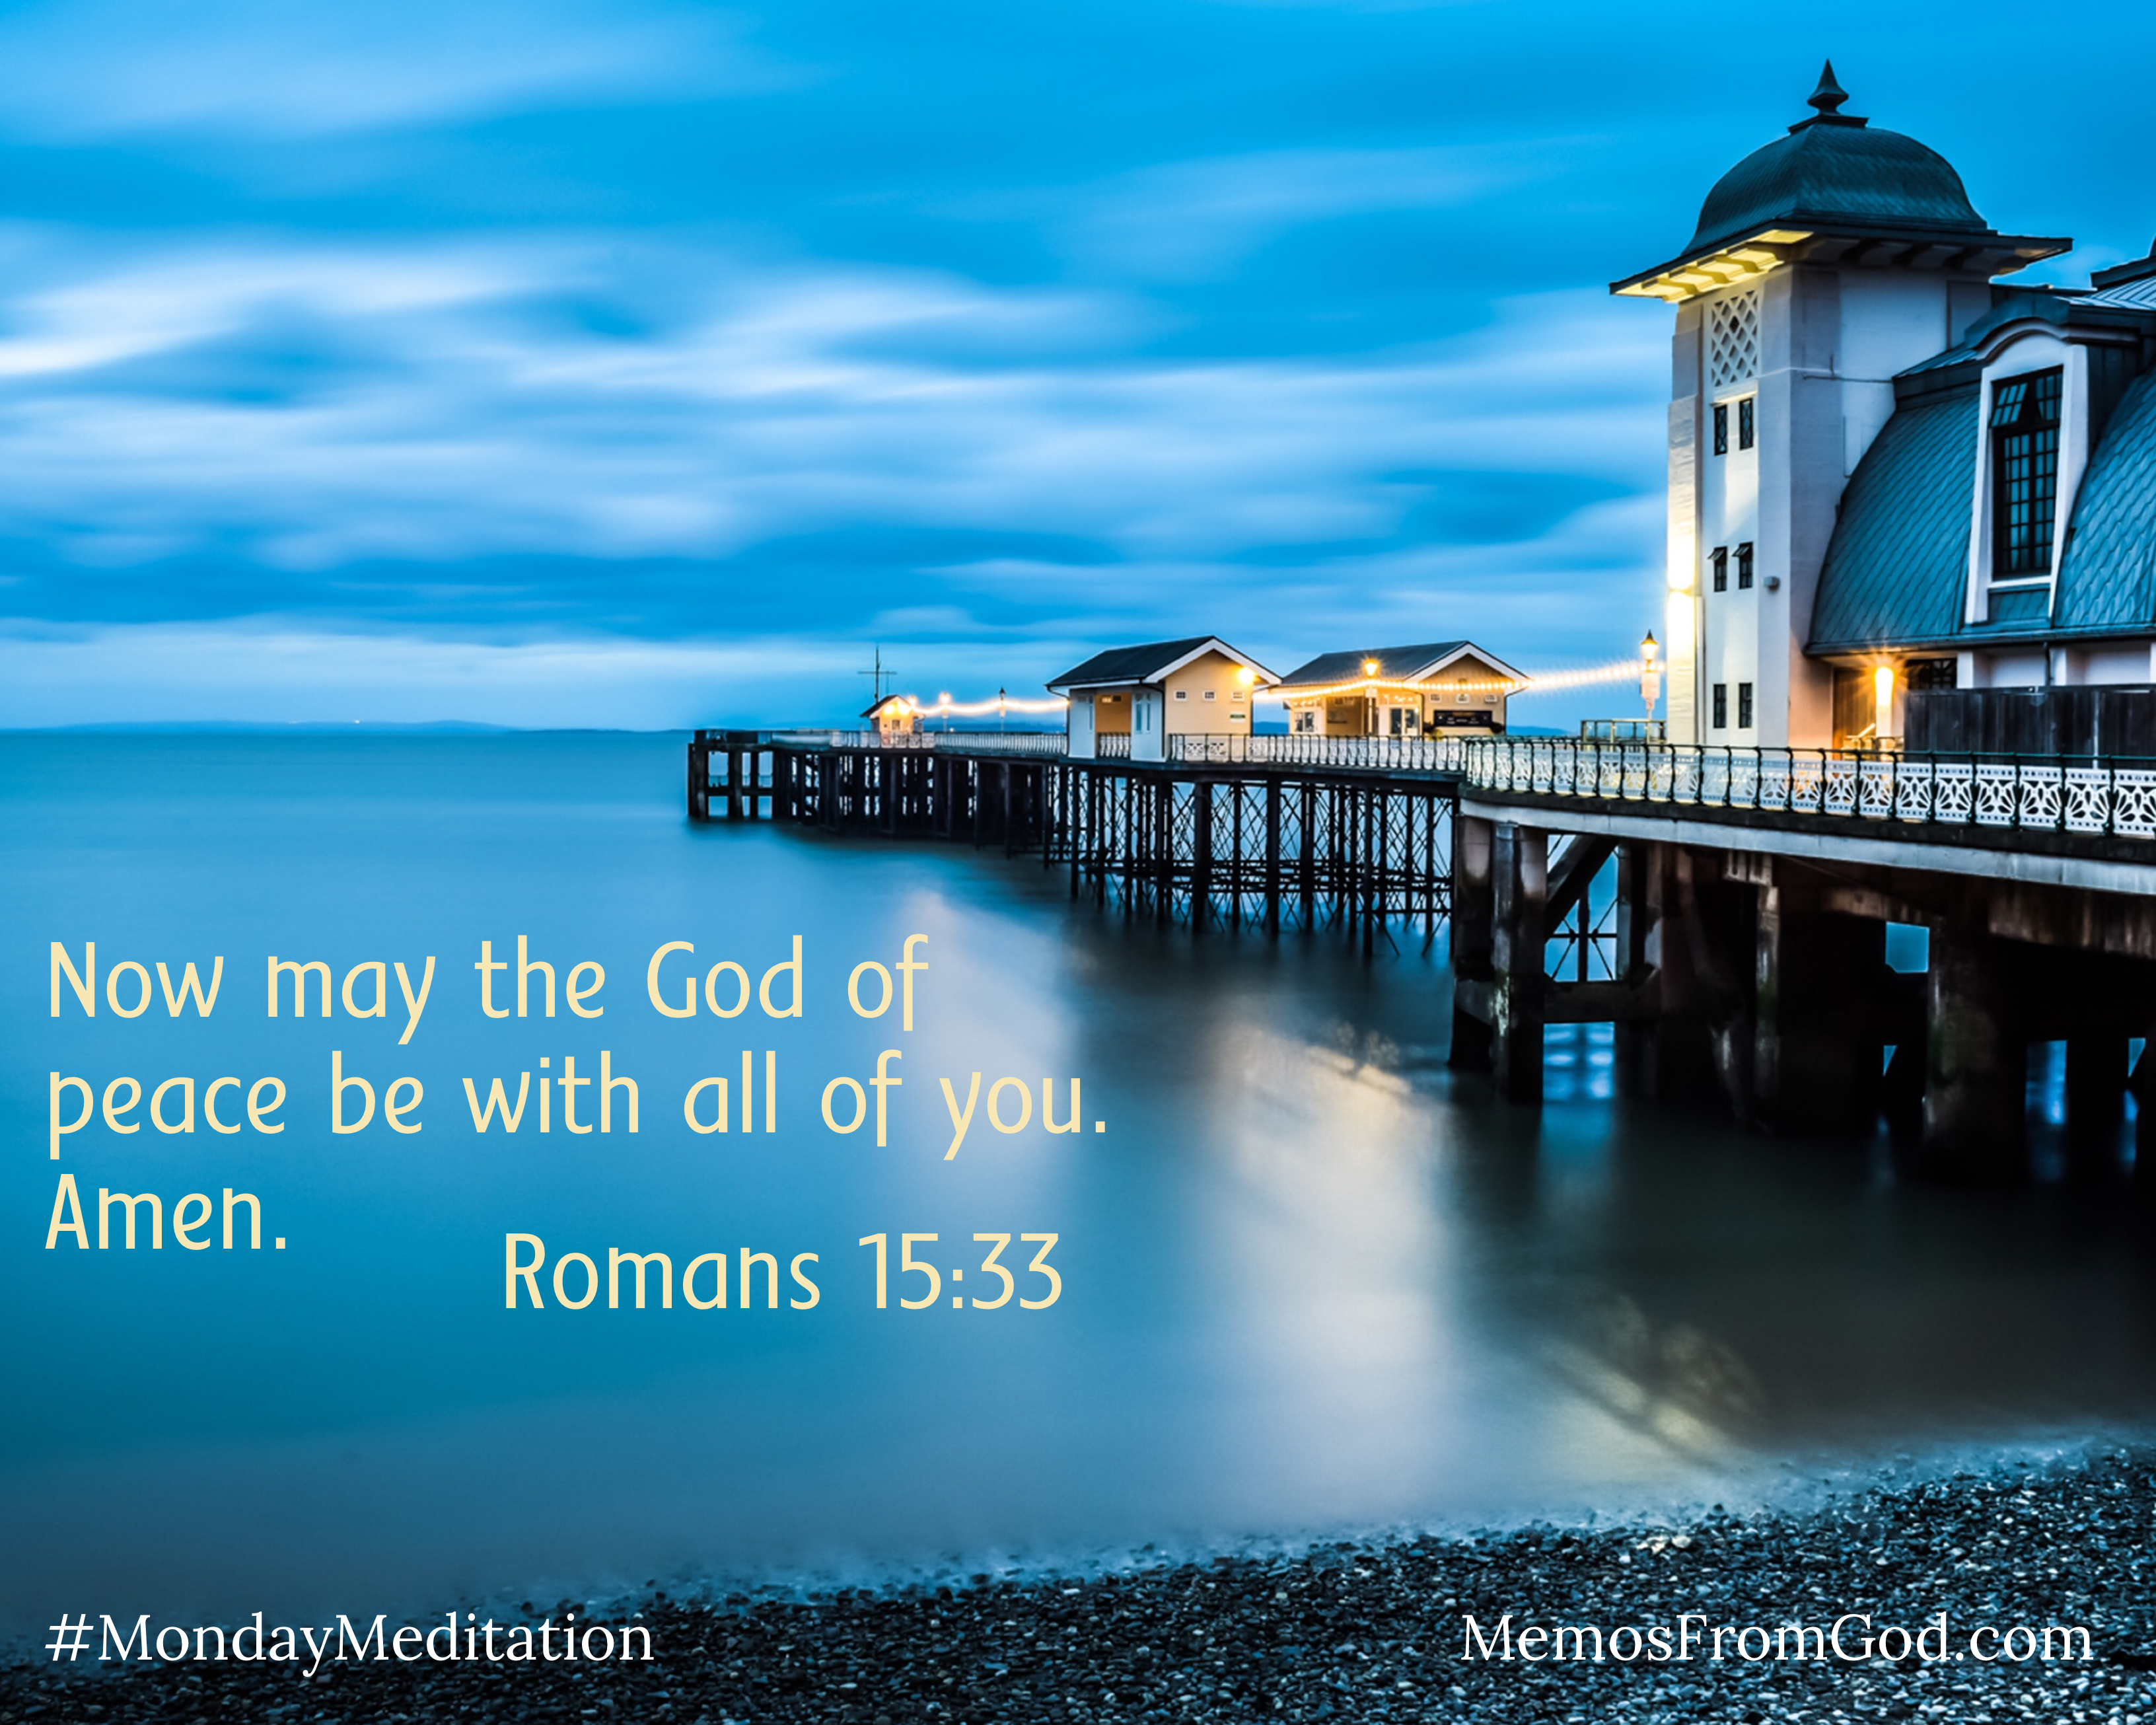 An evening sky is full of clouds. Glowing, golden lights shine from buildings on a pier that extends into a dark blue lake that is as smooth as glass. Caption: Now may the God of peace be with all of you. Amen. Romans 15:33